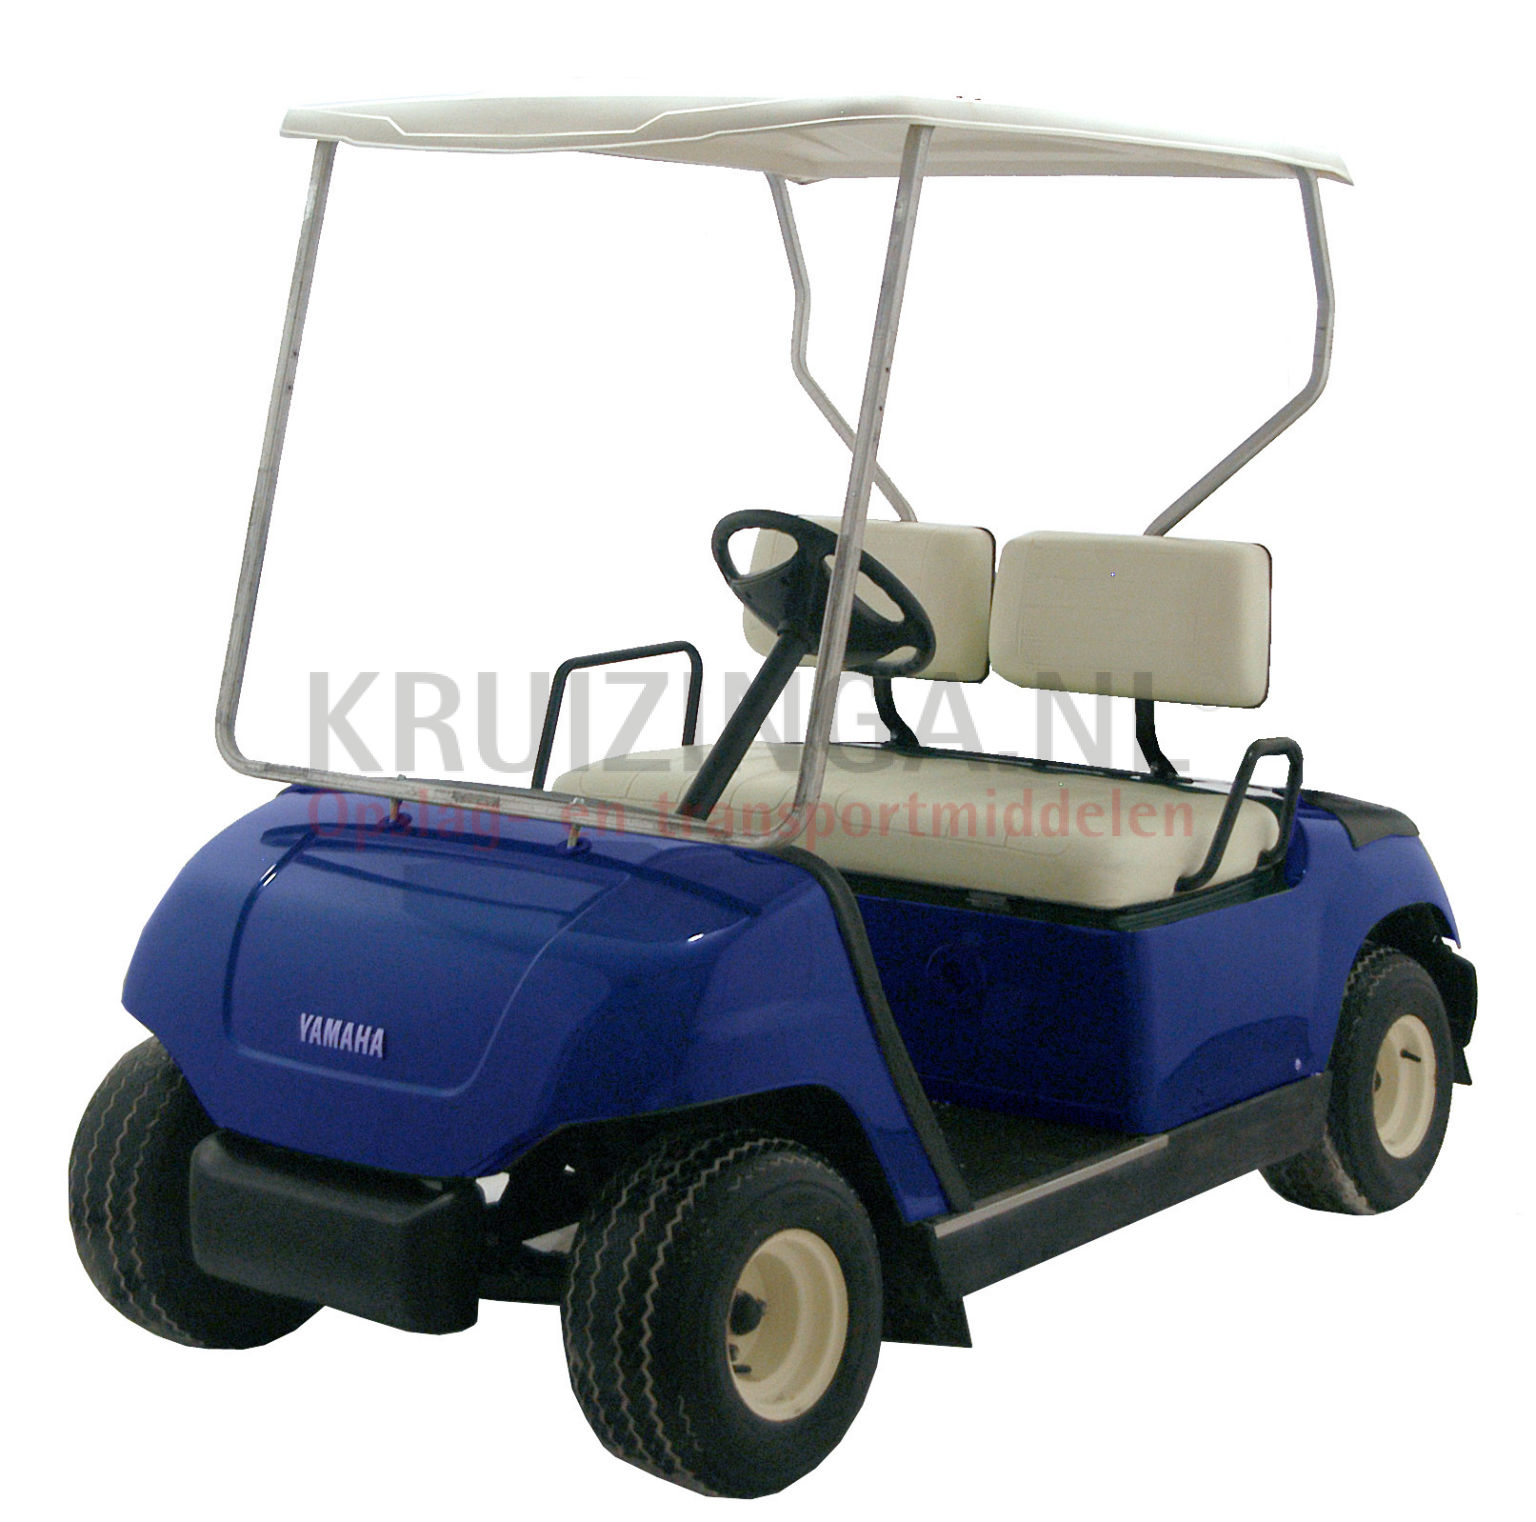 golf cart voiture de golf lectrique occasion. Black Bedroom Furniture Sets. Home Design Ideas